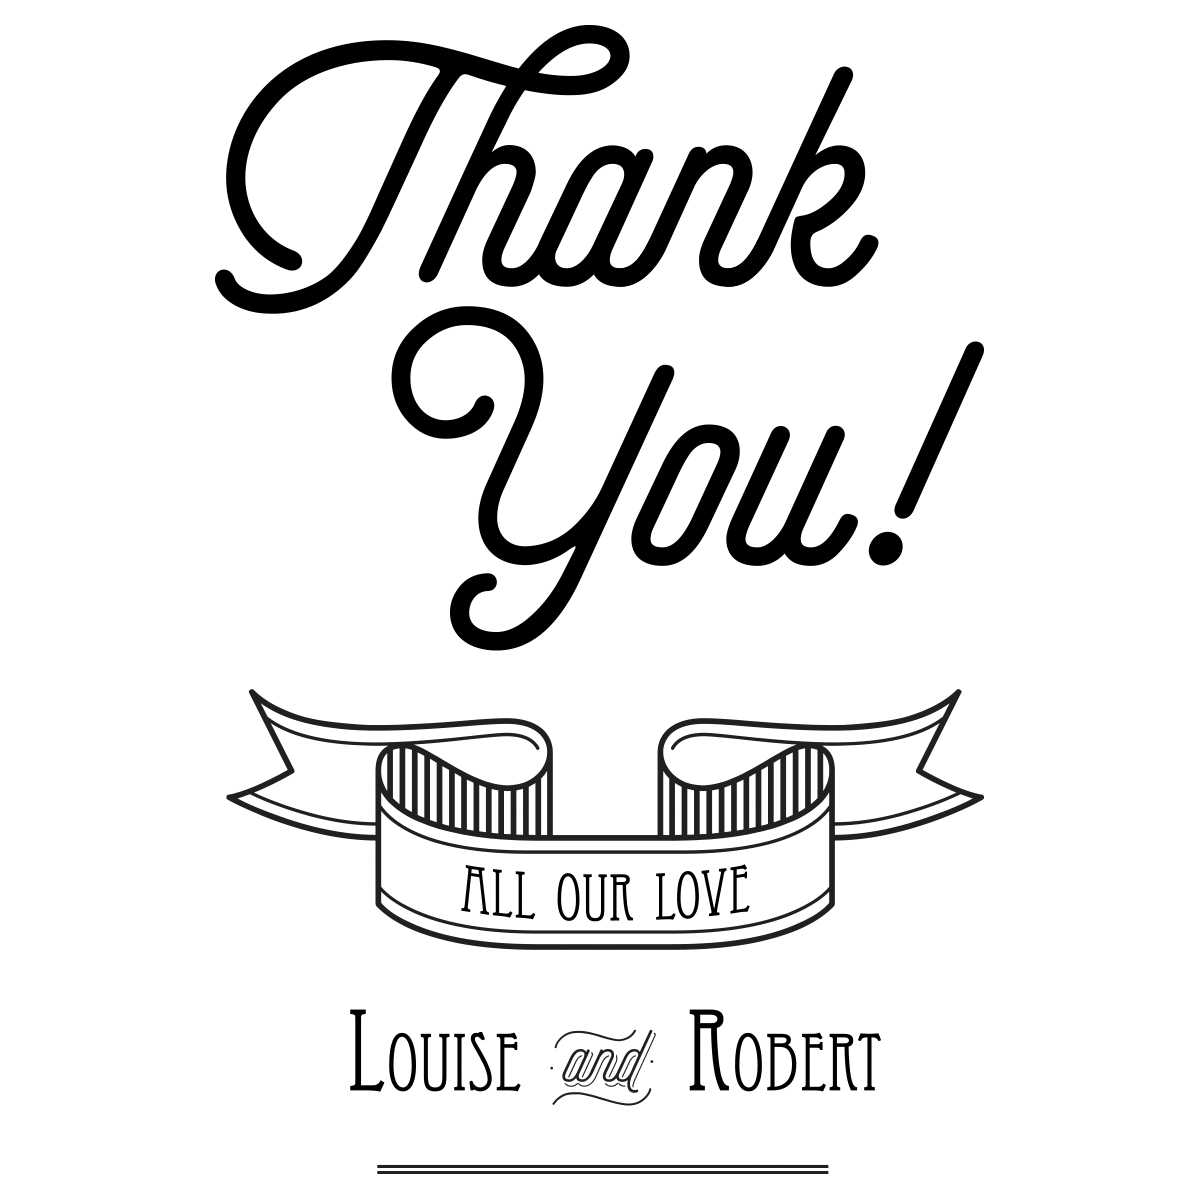 Transparent Thank You Clipart Black And White - Thank You Wedding Cards  Grateful, HD Png Download - vhv